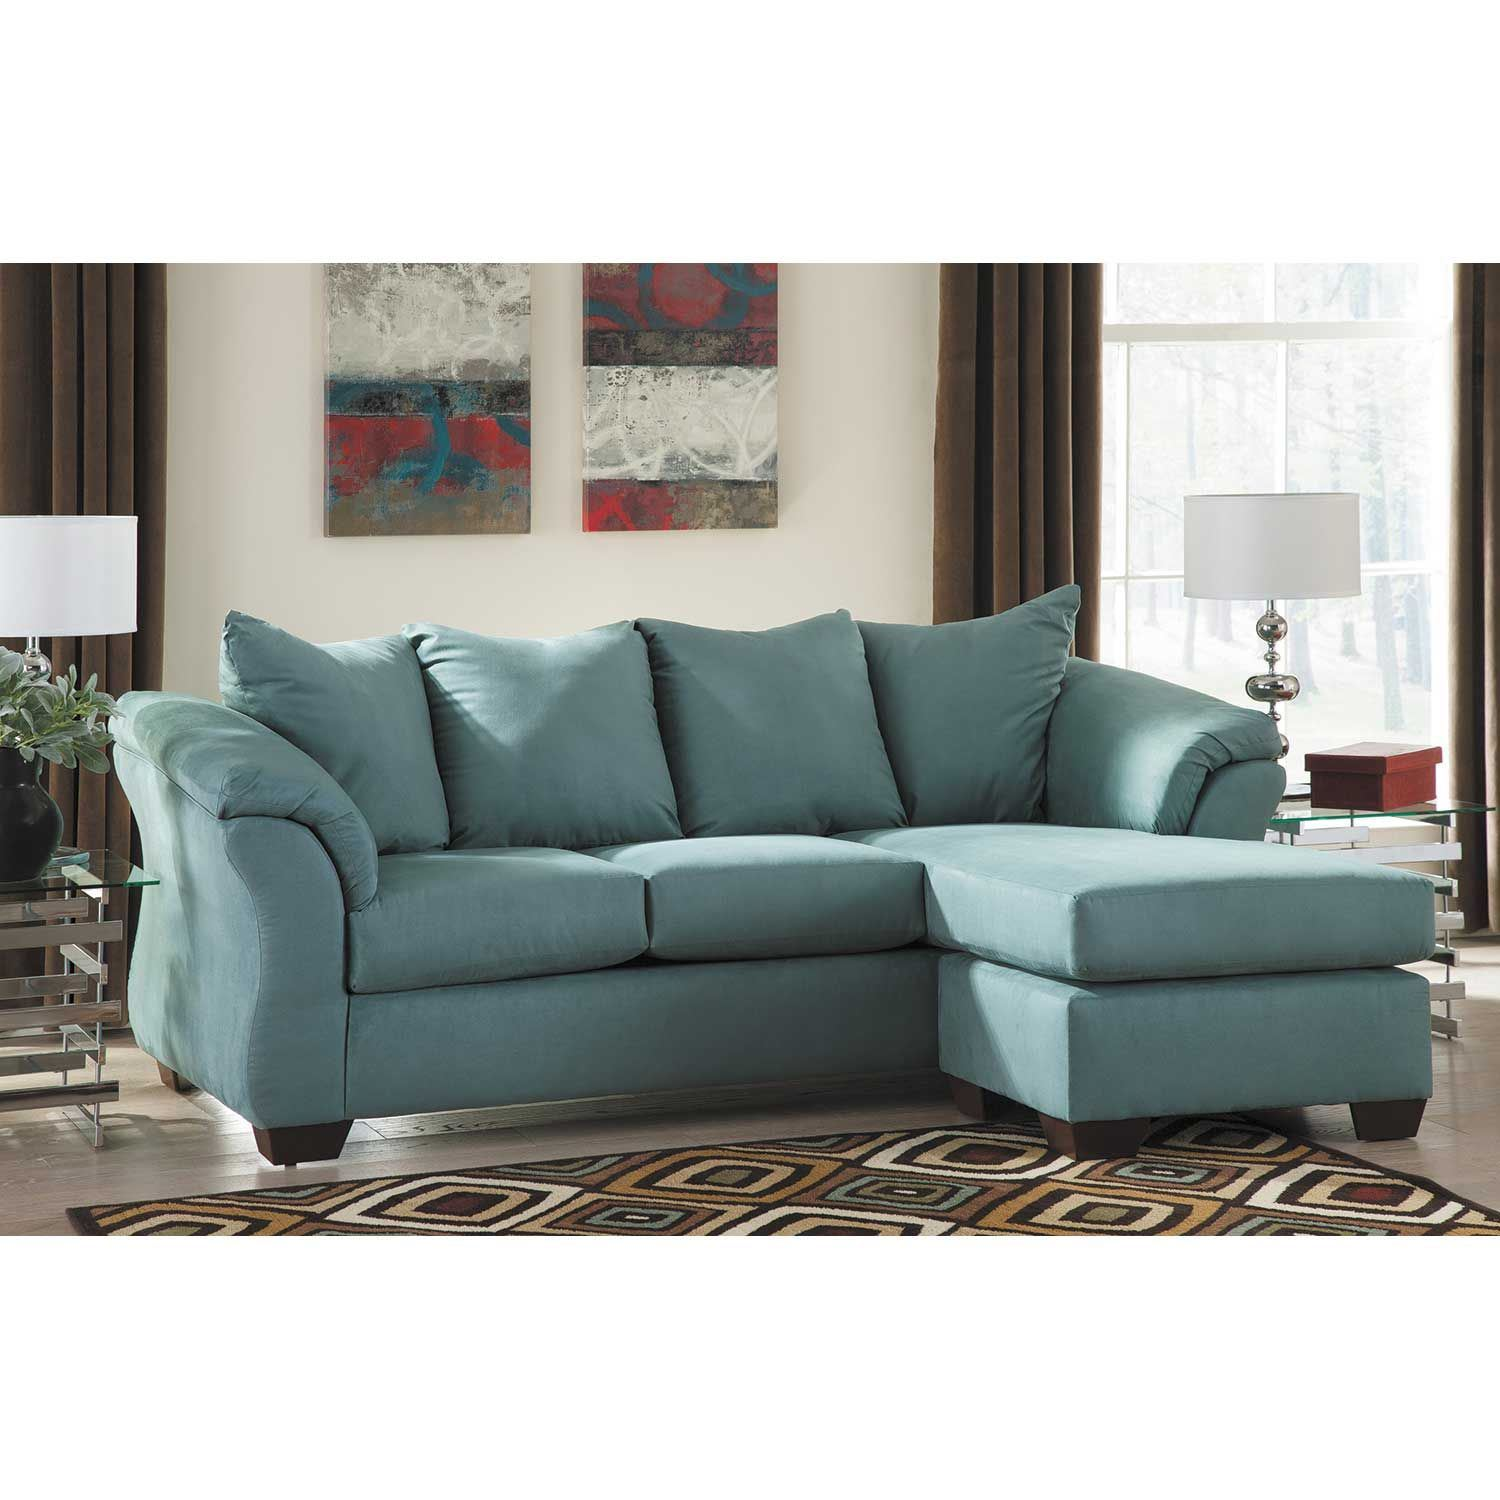 Blue Reversible Sofa Chaise V5 750sc Ashley Furniture Afw